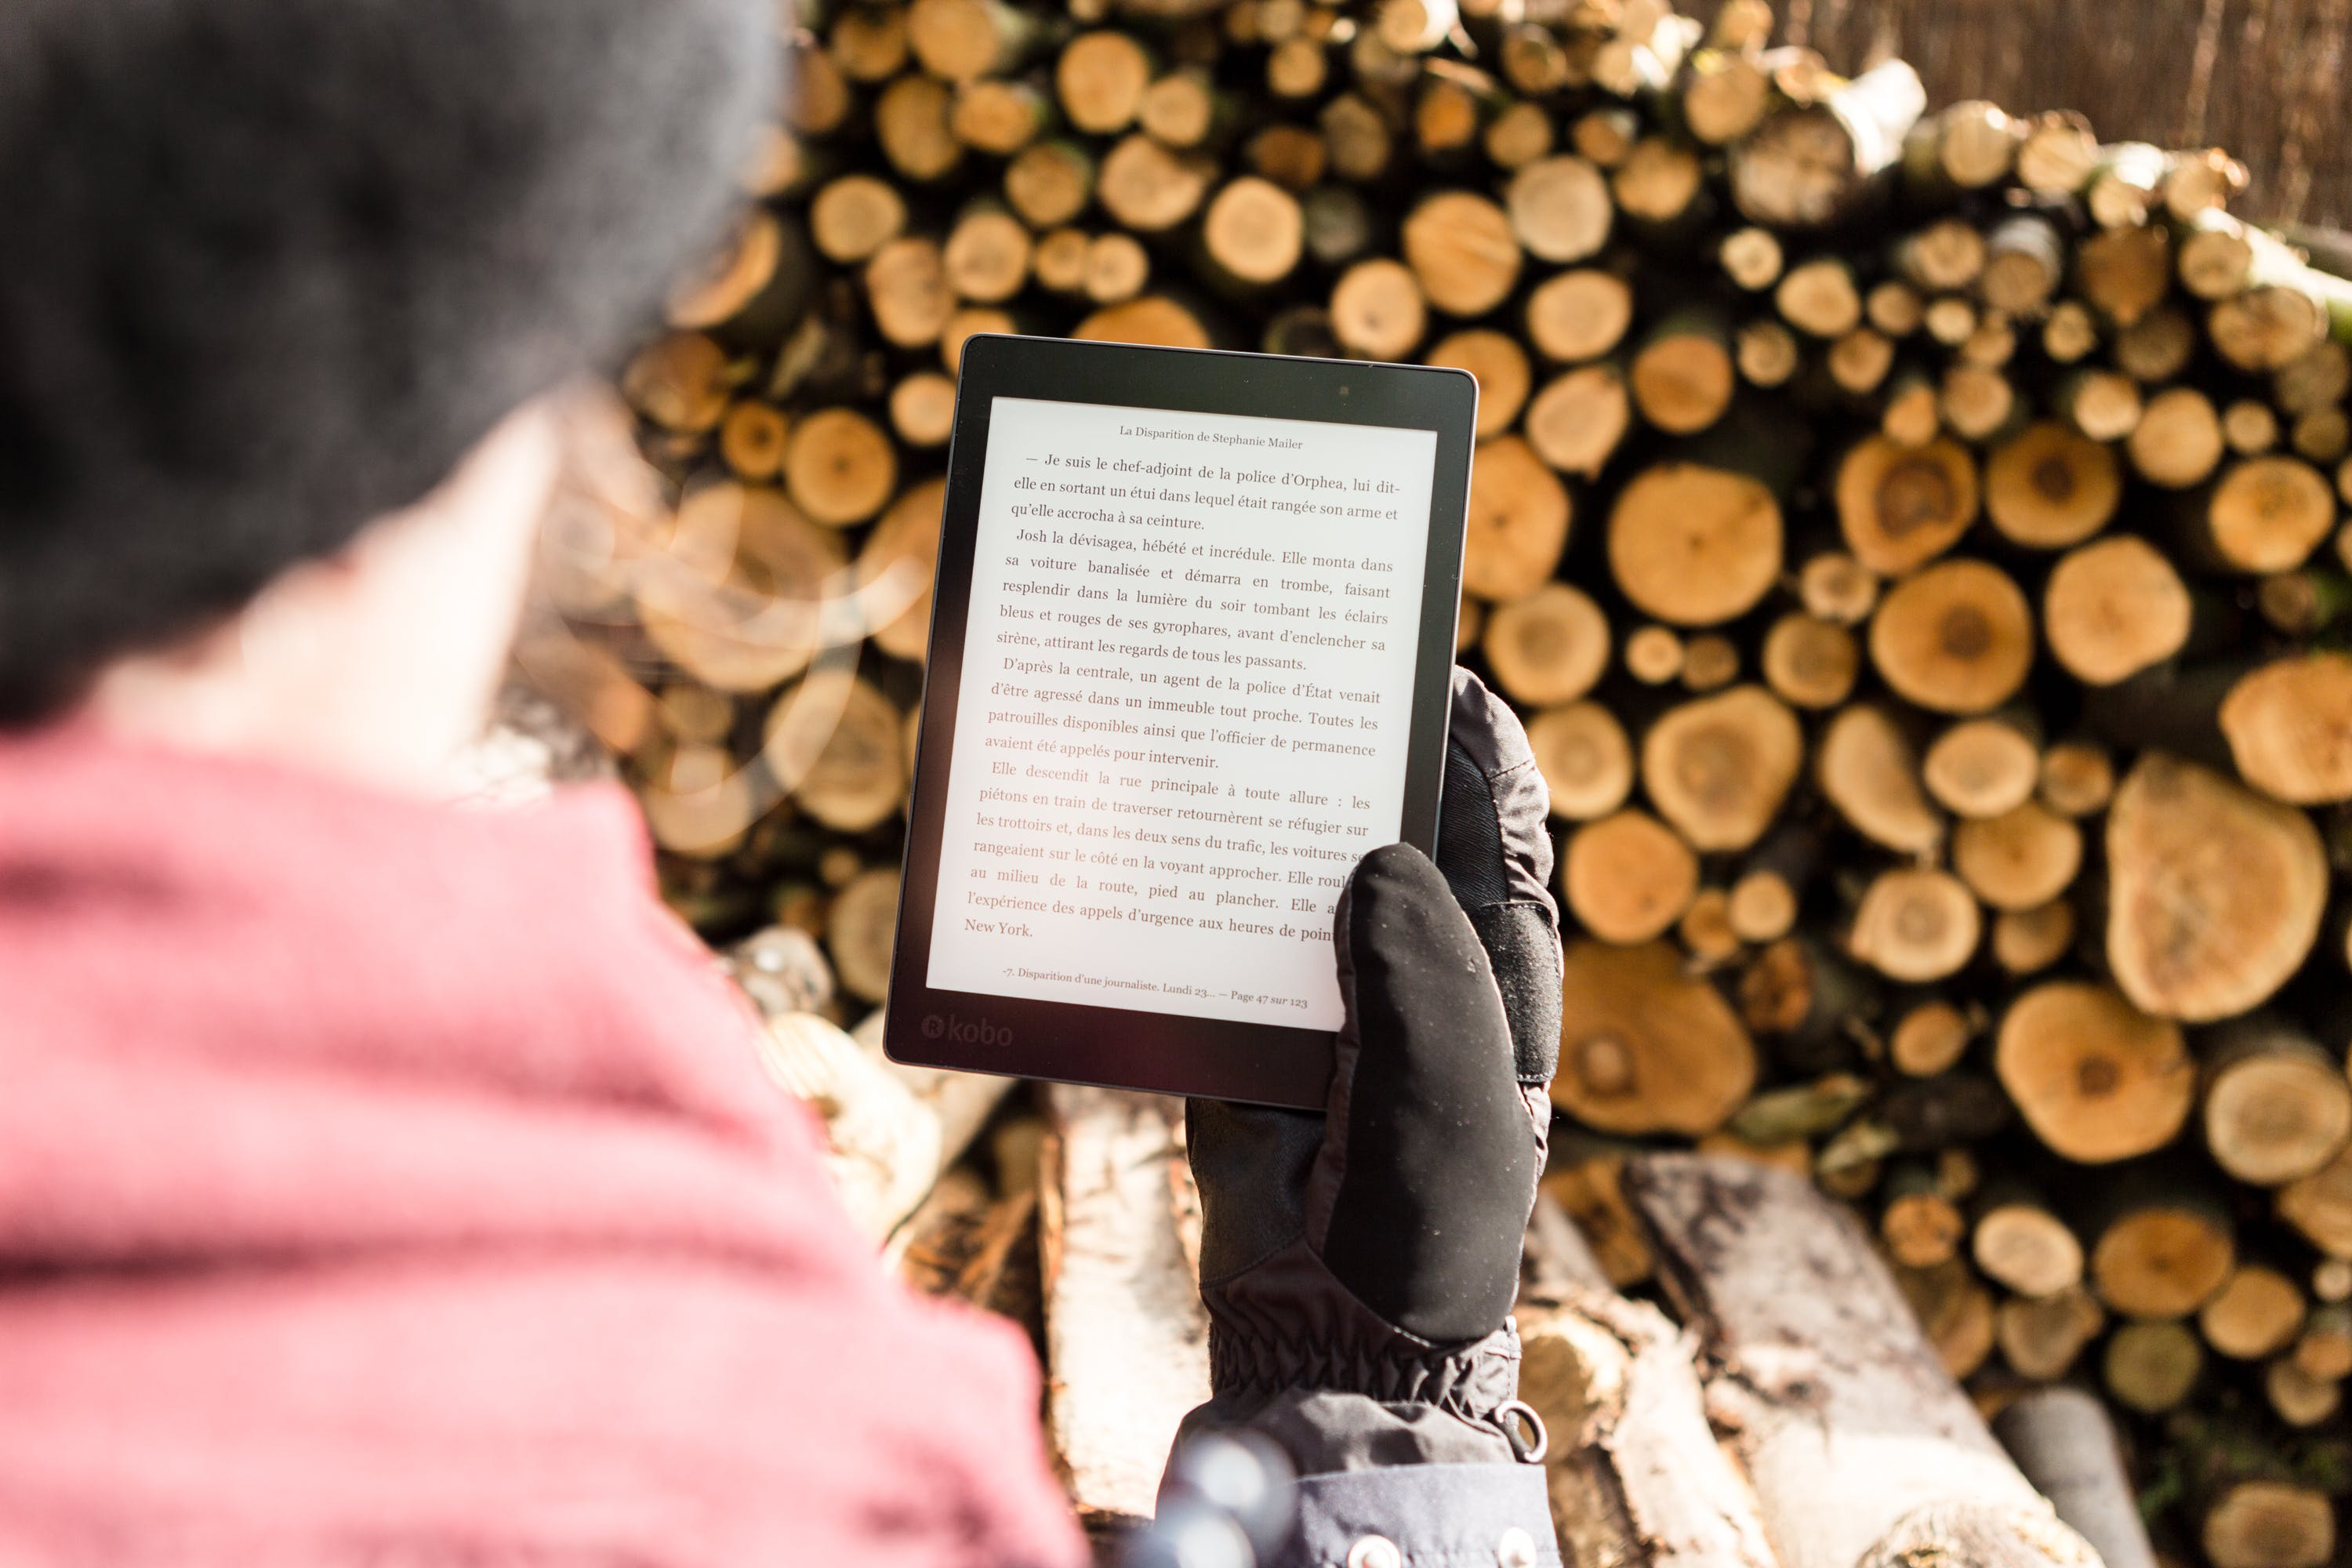 Person Holding Black E-book Reader Near Pile of Firewood